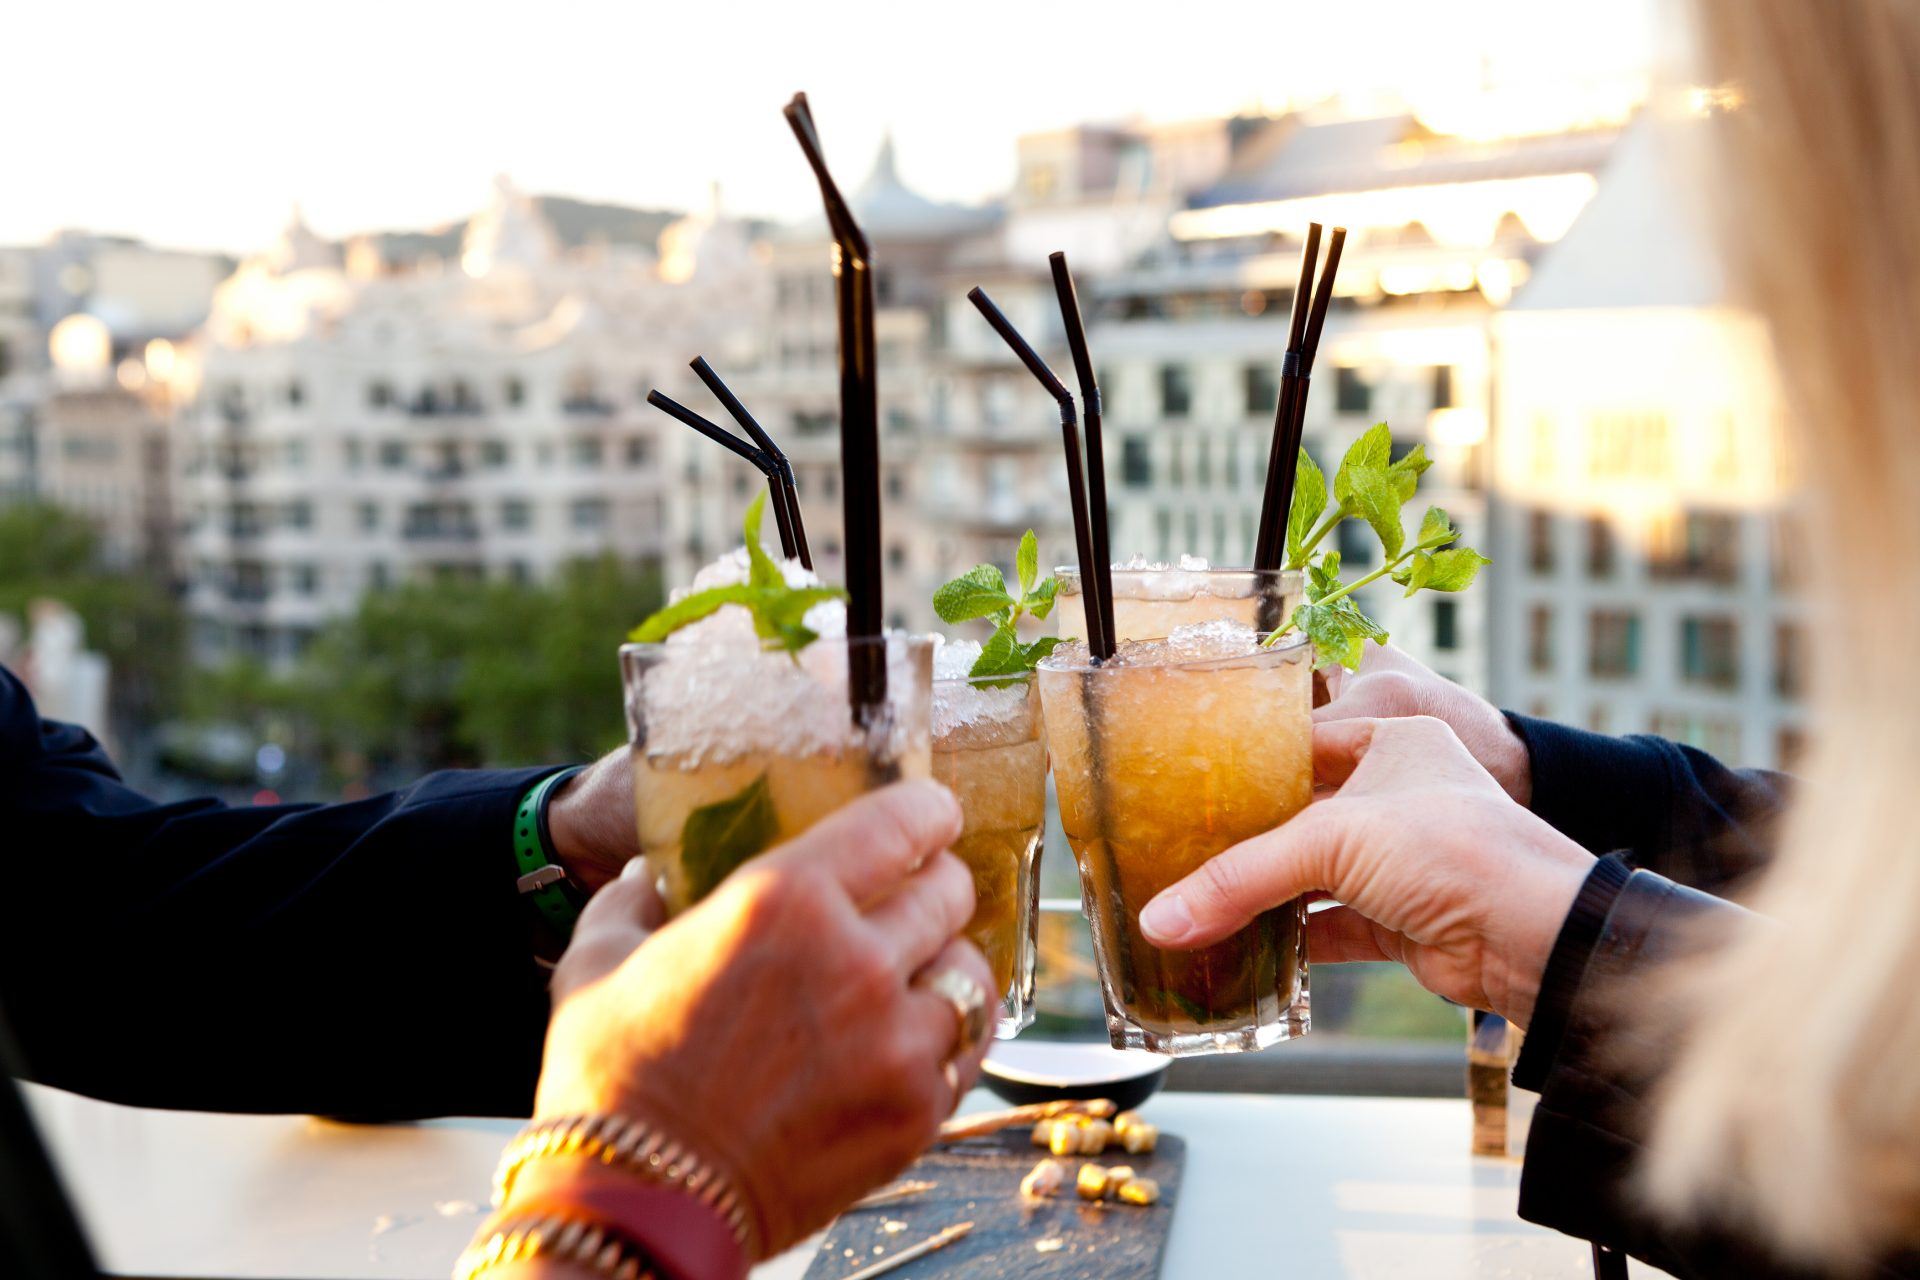 Music Drinks And Gastronomy On Alaire Terrace Associació